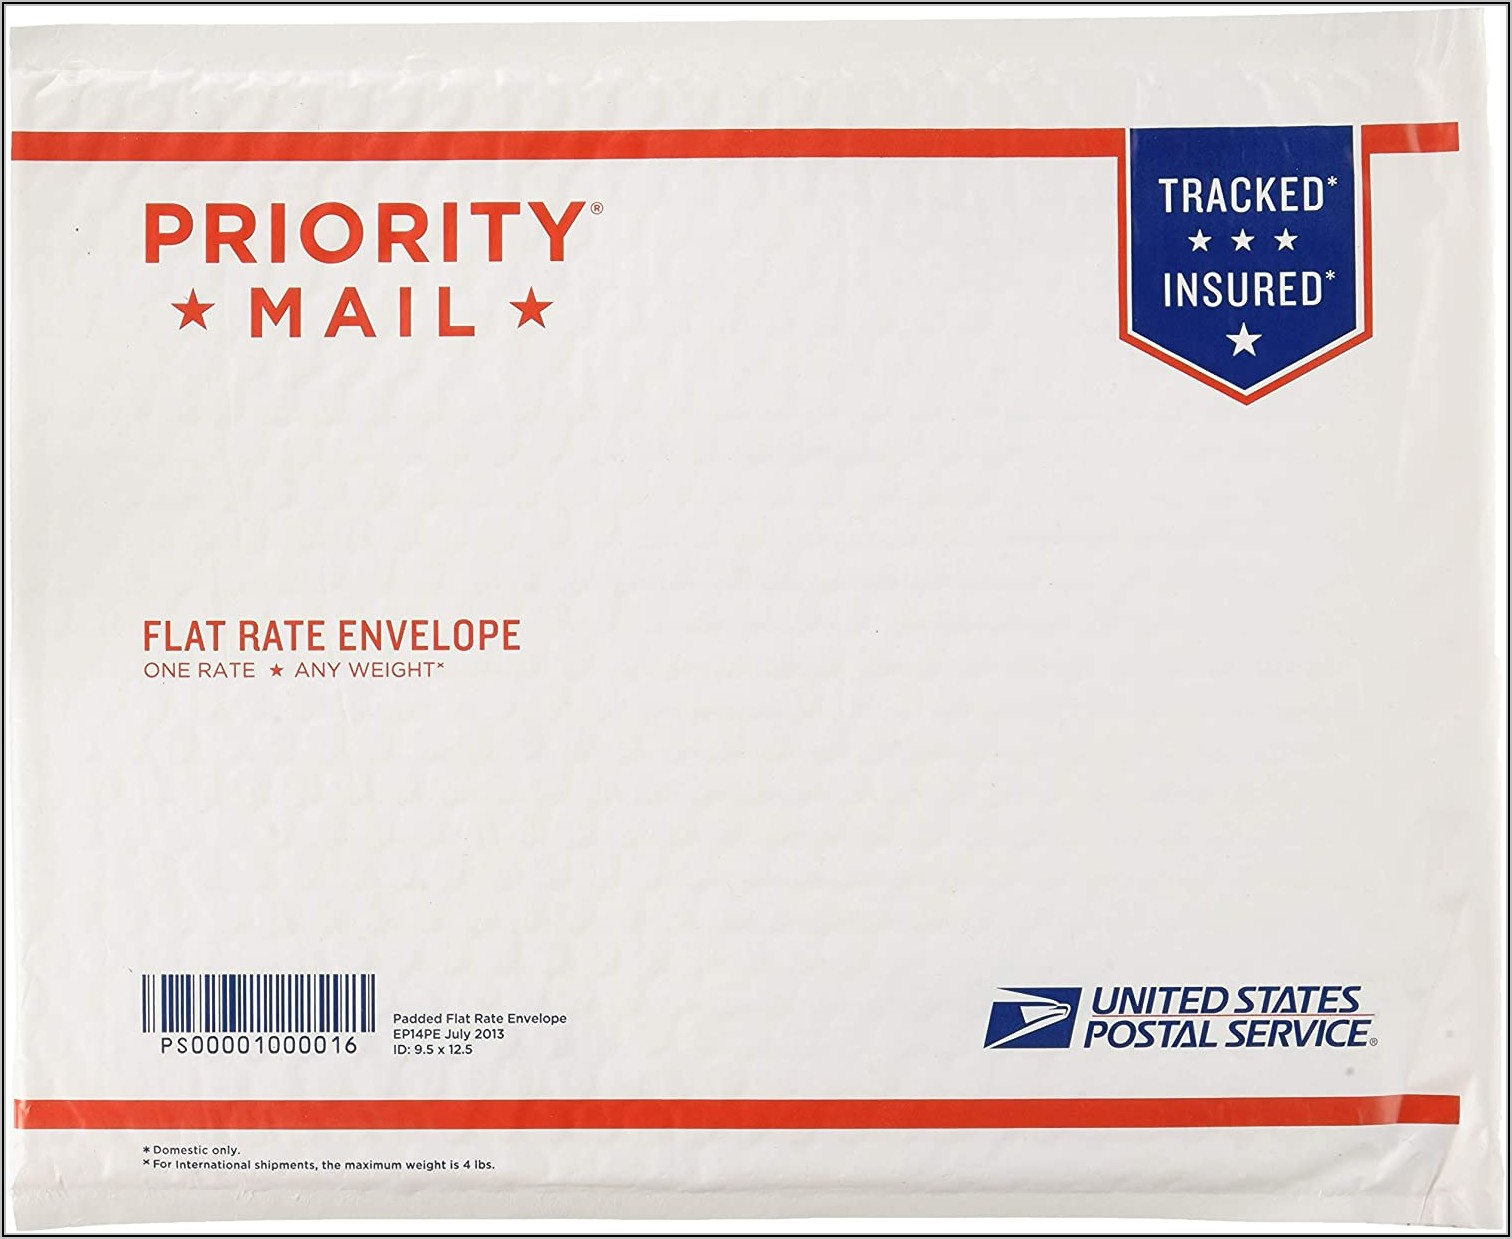 First Class Mail International Retail Large Envelopes (flats)